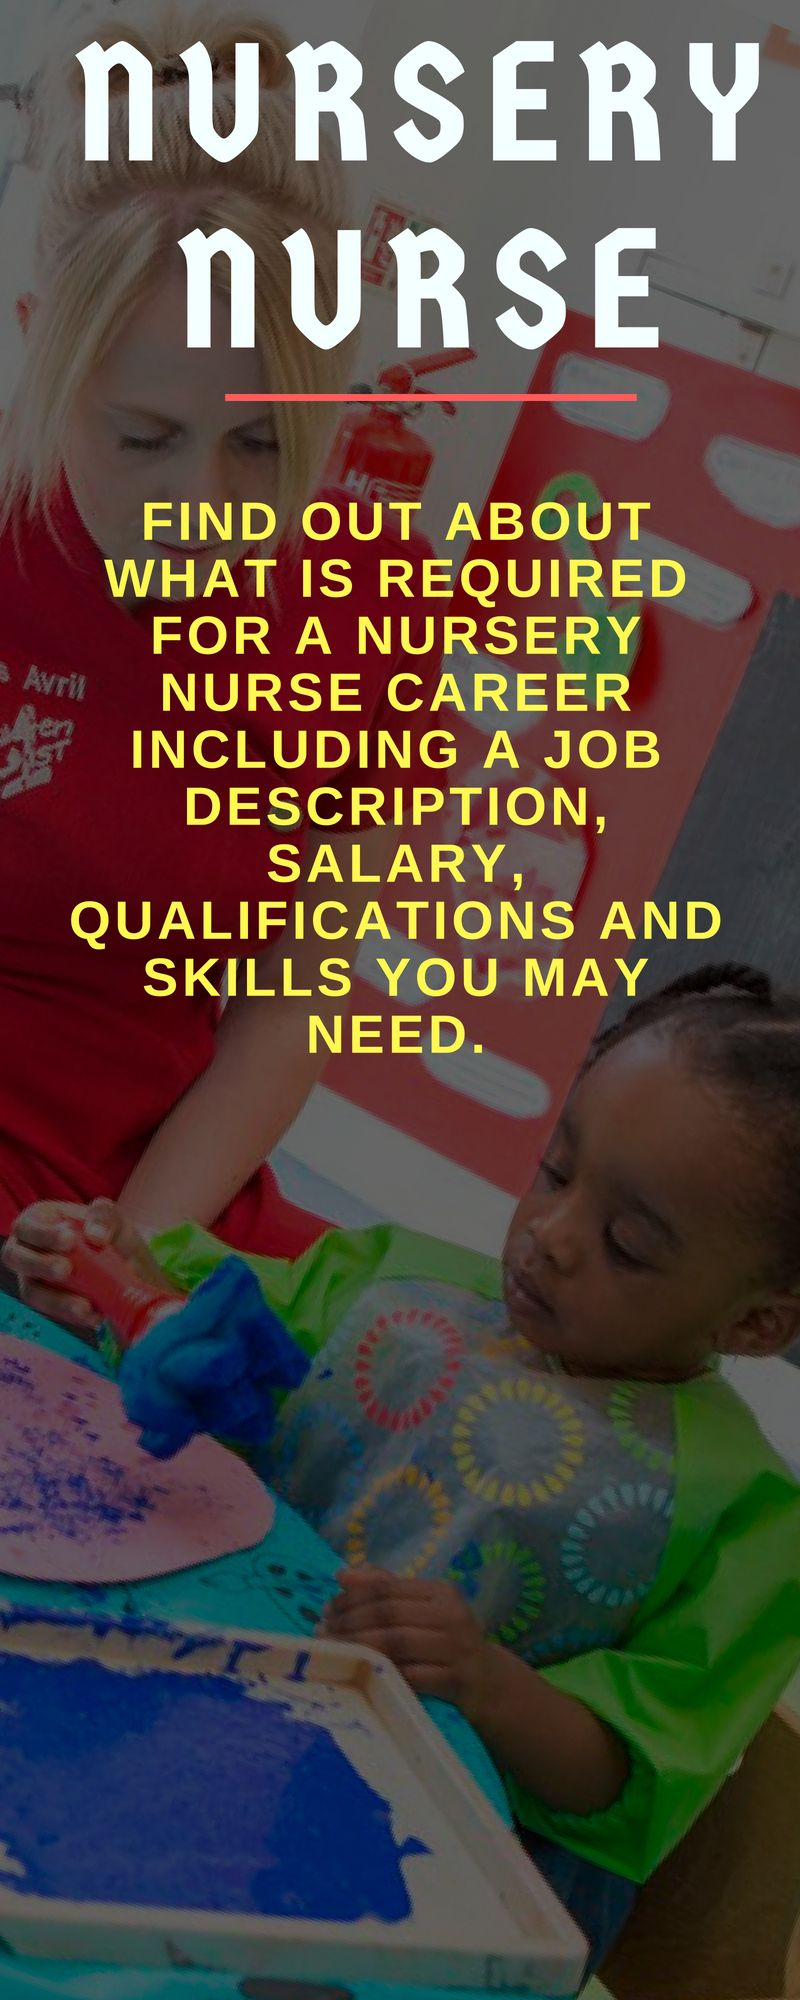 Find Out About What Is Required For A Nursery Nurse Career Including Job Description Salary Qualifications And Skills You May Need